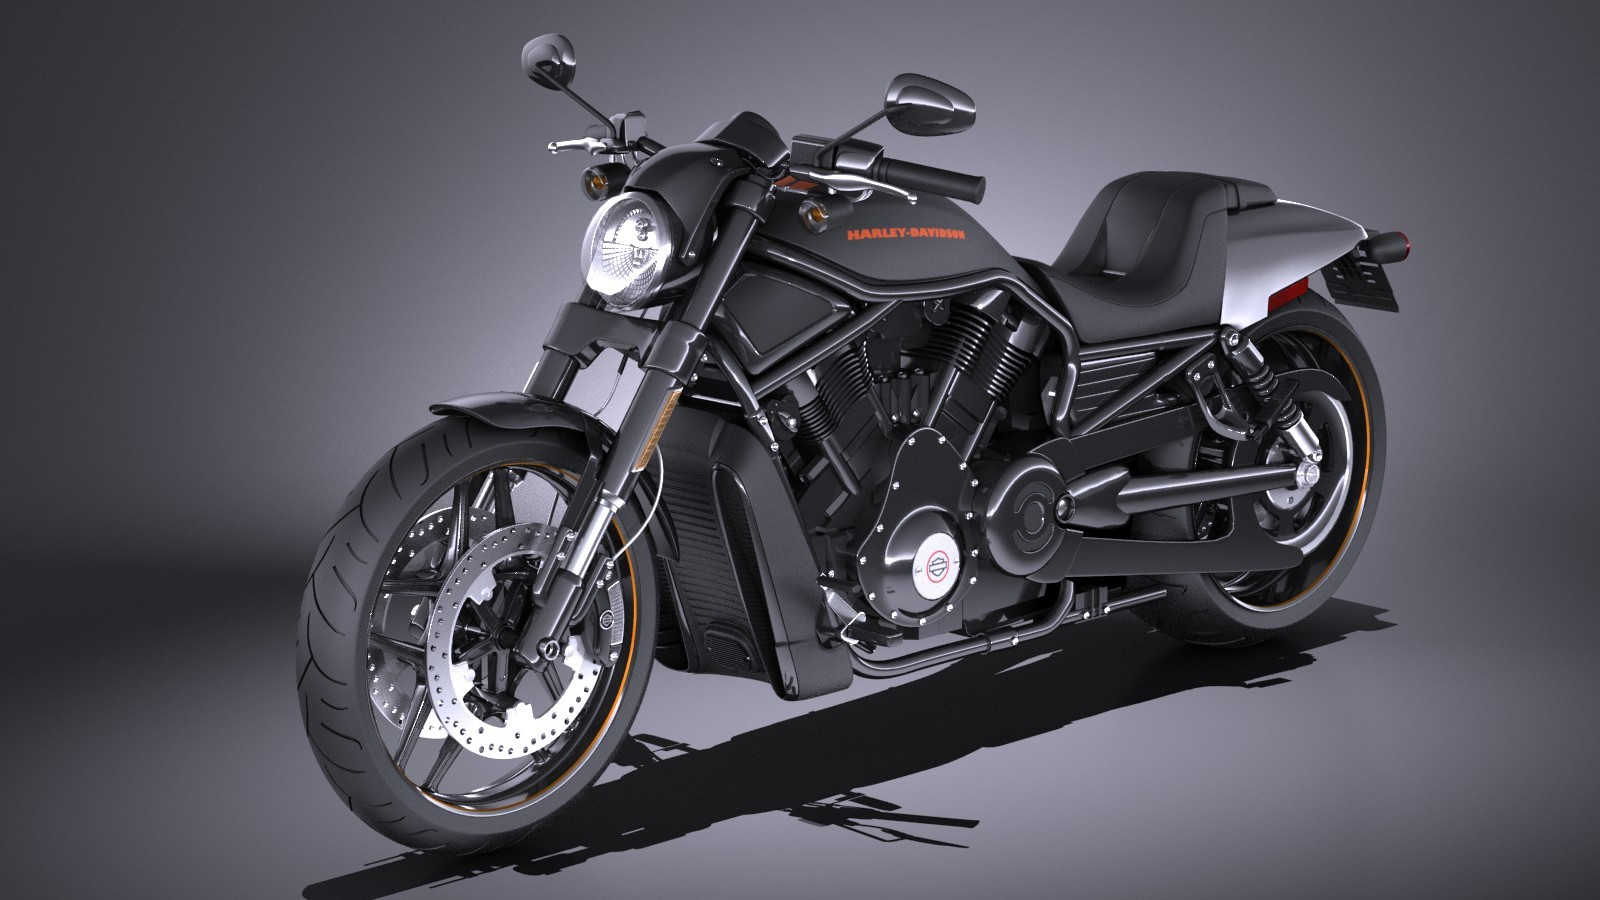 ghost rider bike harley davidson v rod consumer review. Black Bedroom Furniture Sets. Home Design Ideas